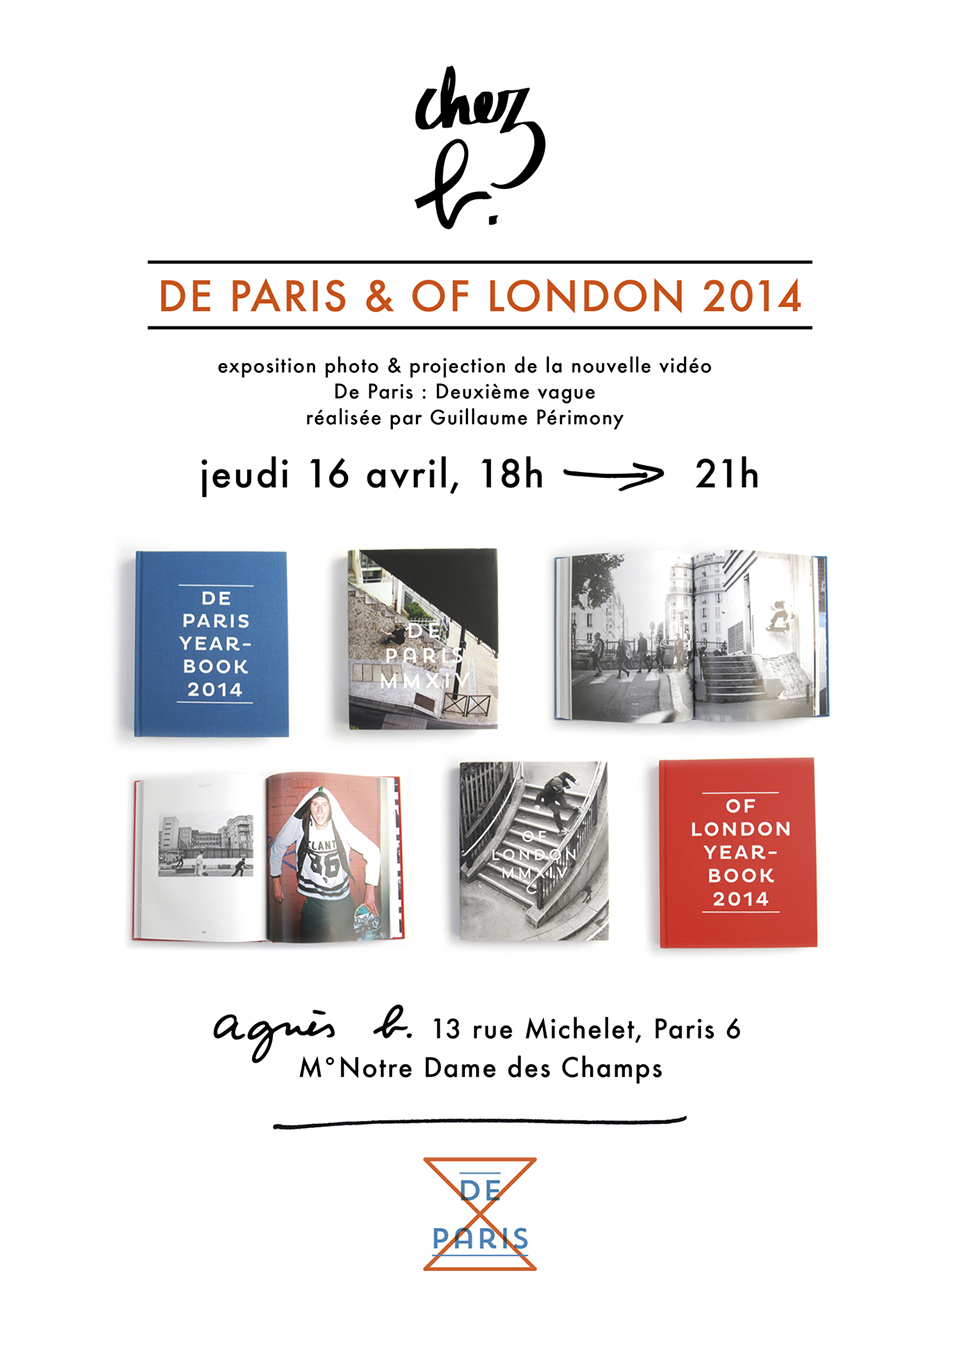 DE_PARIS_LAUNCH_2015_CHEZ_B